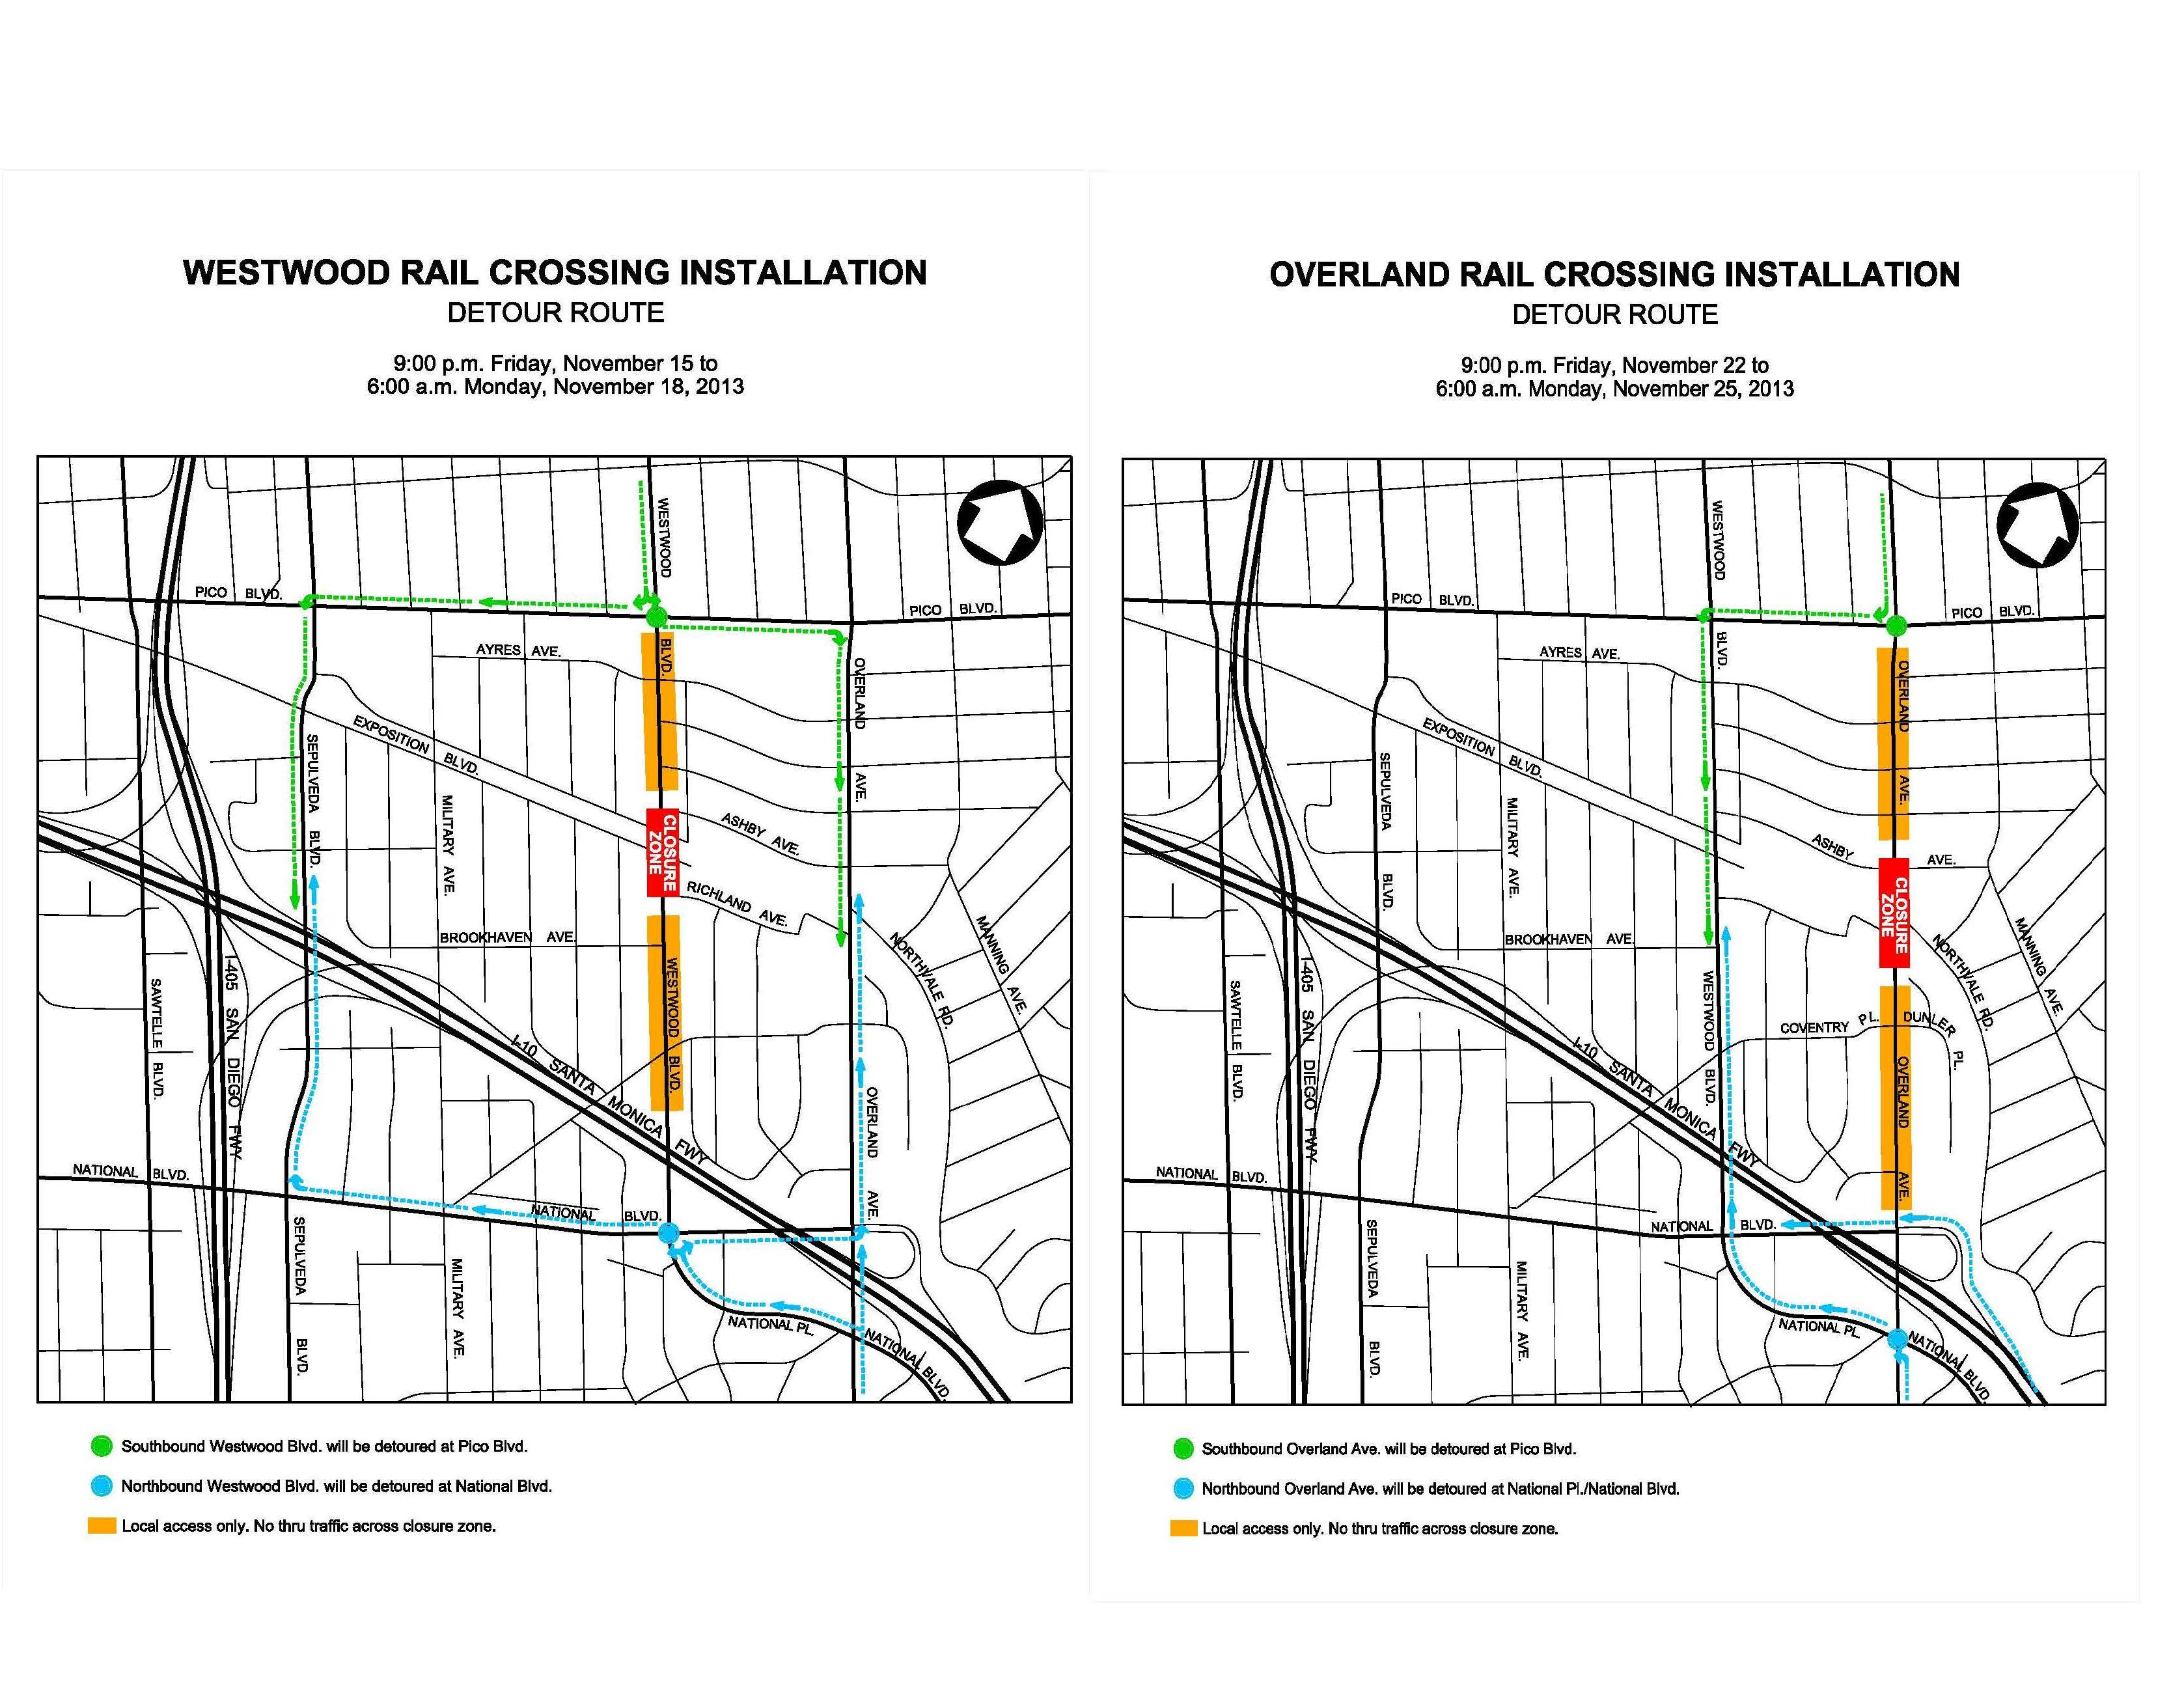 111313-EXPO-P2-CONSTRUCTION-NOTICE-Track-Installation-for-Westwood-and-Overland_Page_2